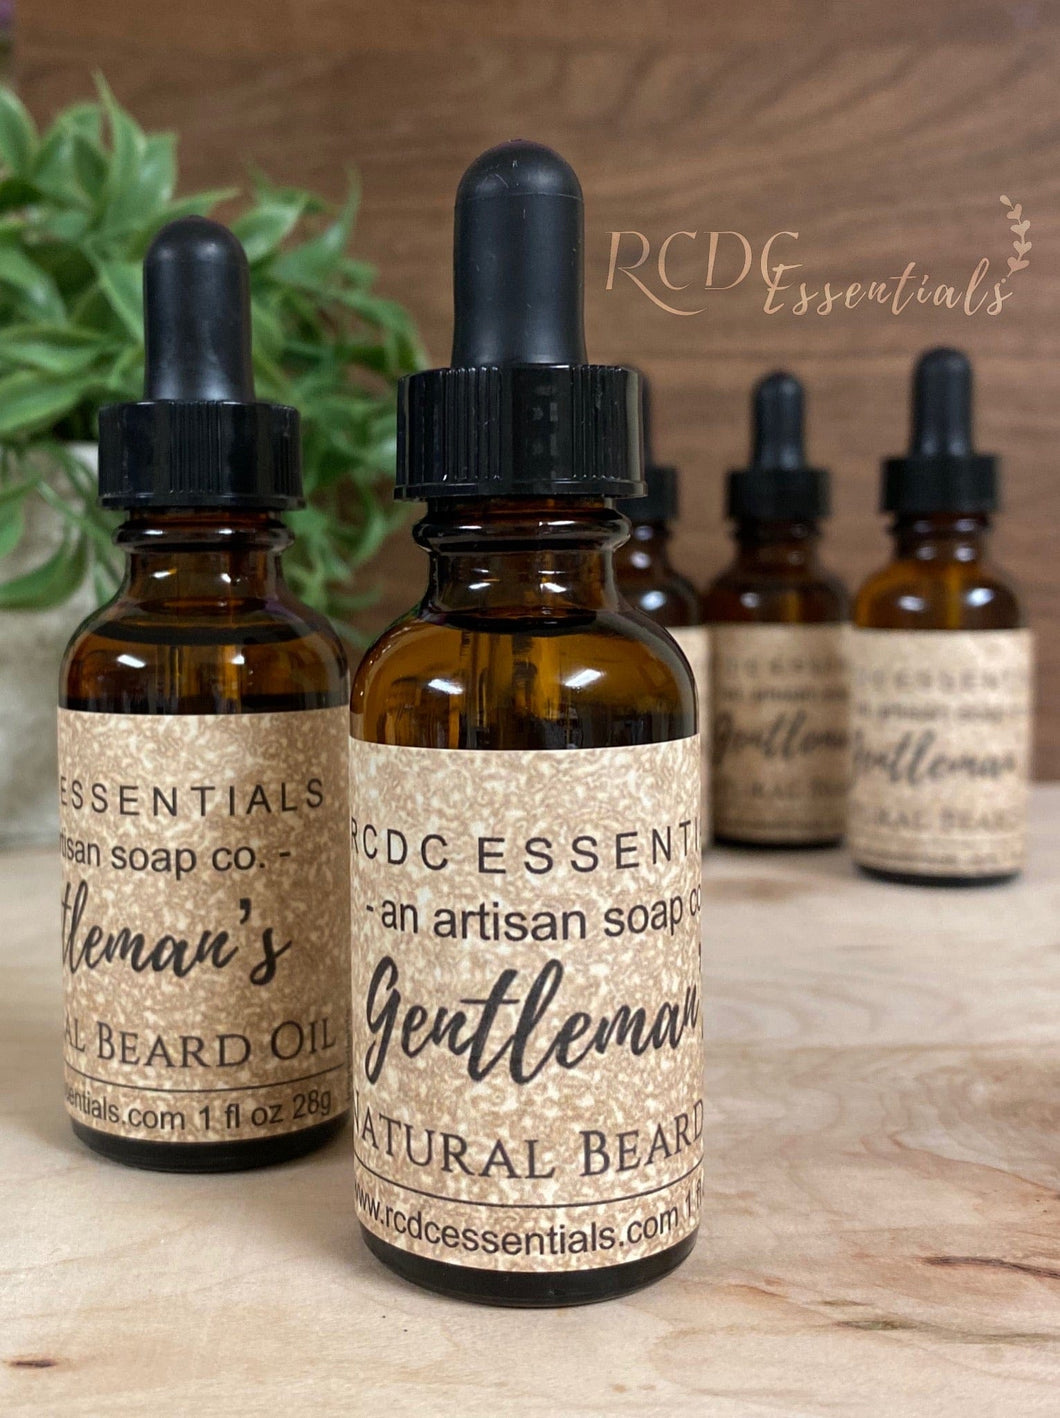 Gentleman's Hair & Beard Oil